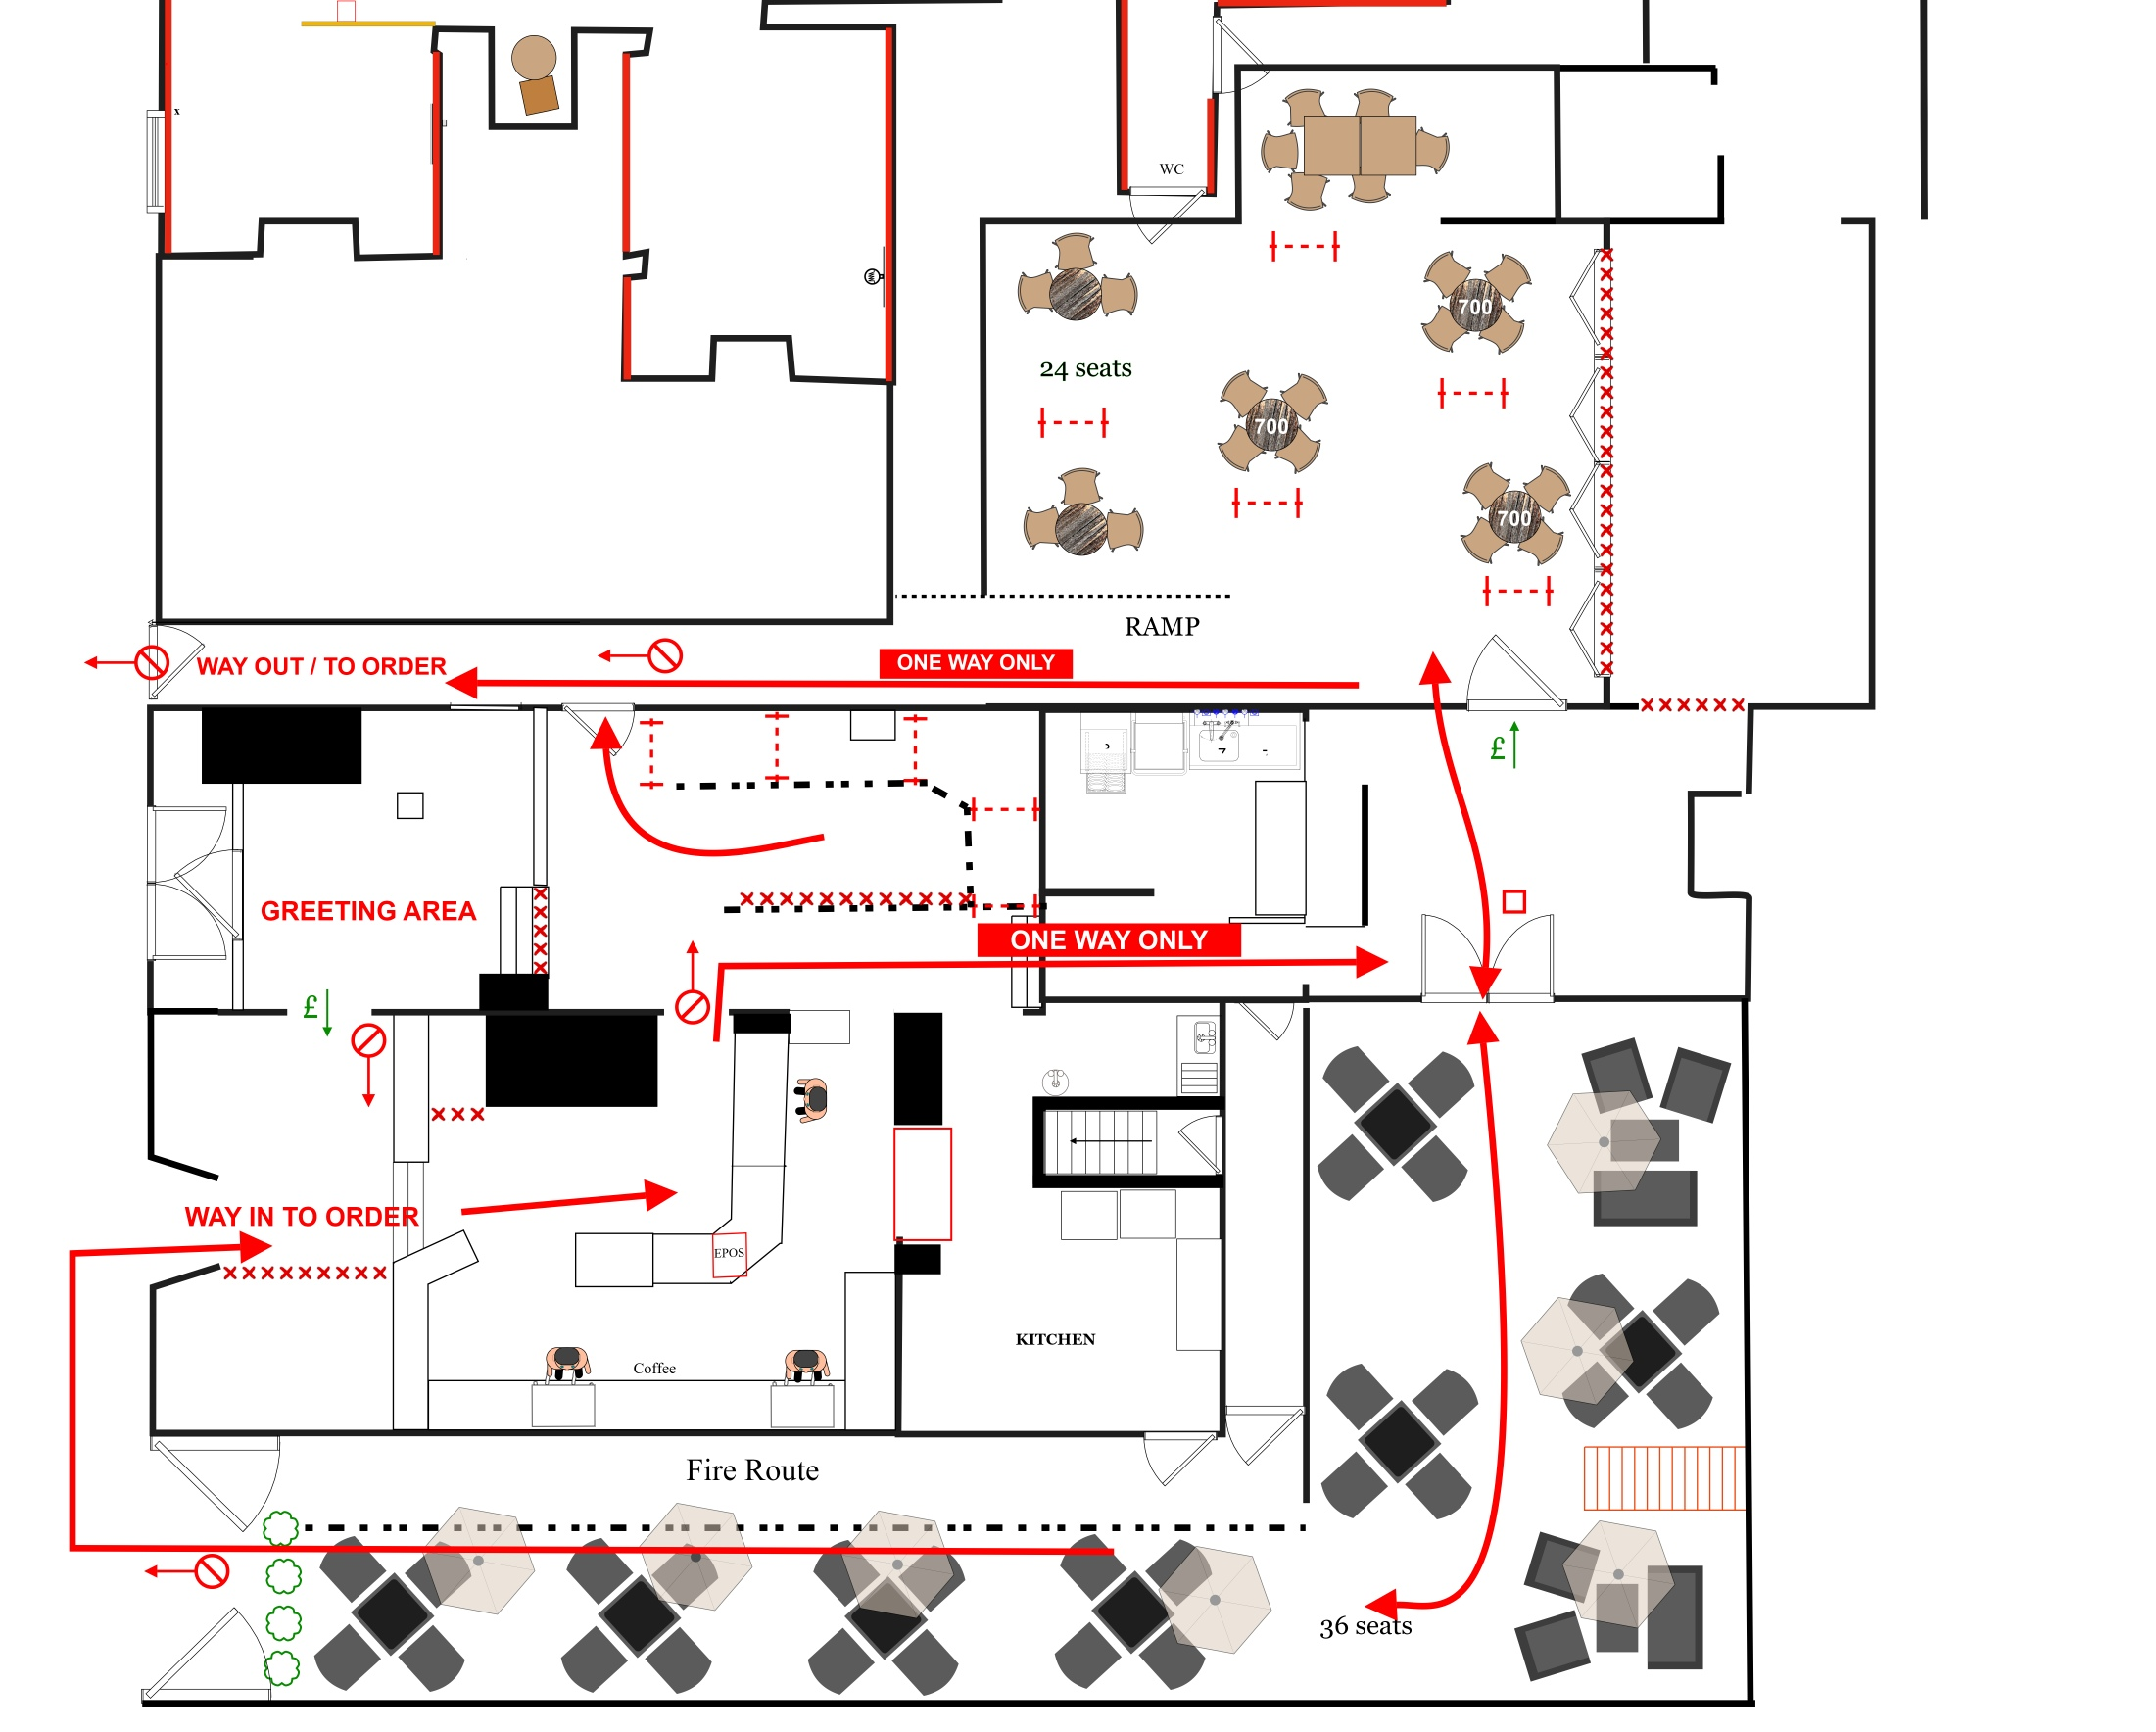 Plan of the shop layout